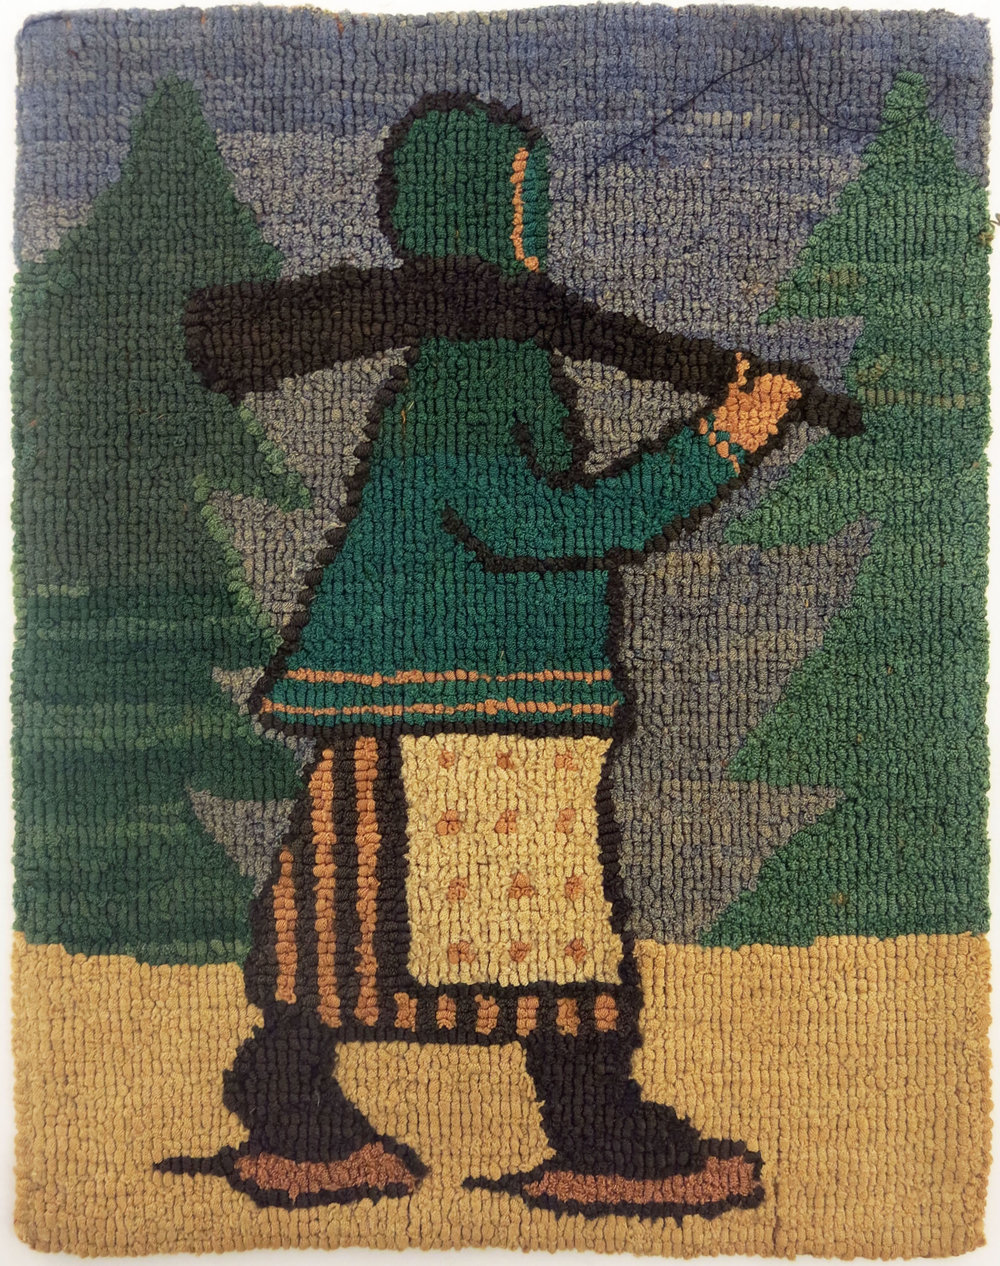 Anonymous, The Grenfell Mission,  Woman Hunter,  c. 1938, silk, rayon; dyed, 9 1/2h x 7 1/2w in.